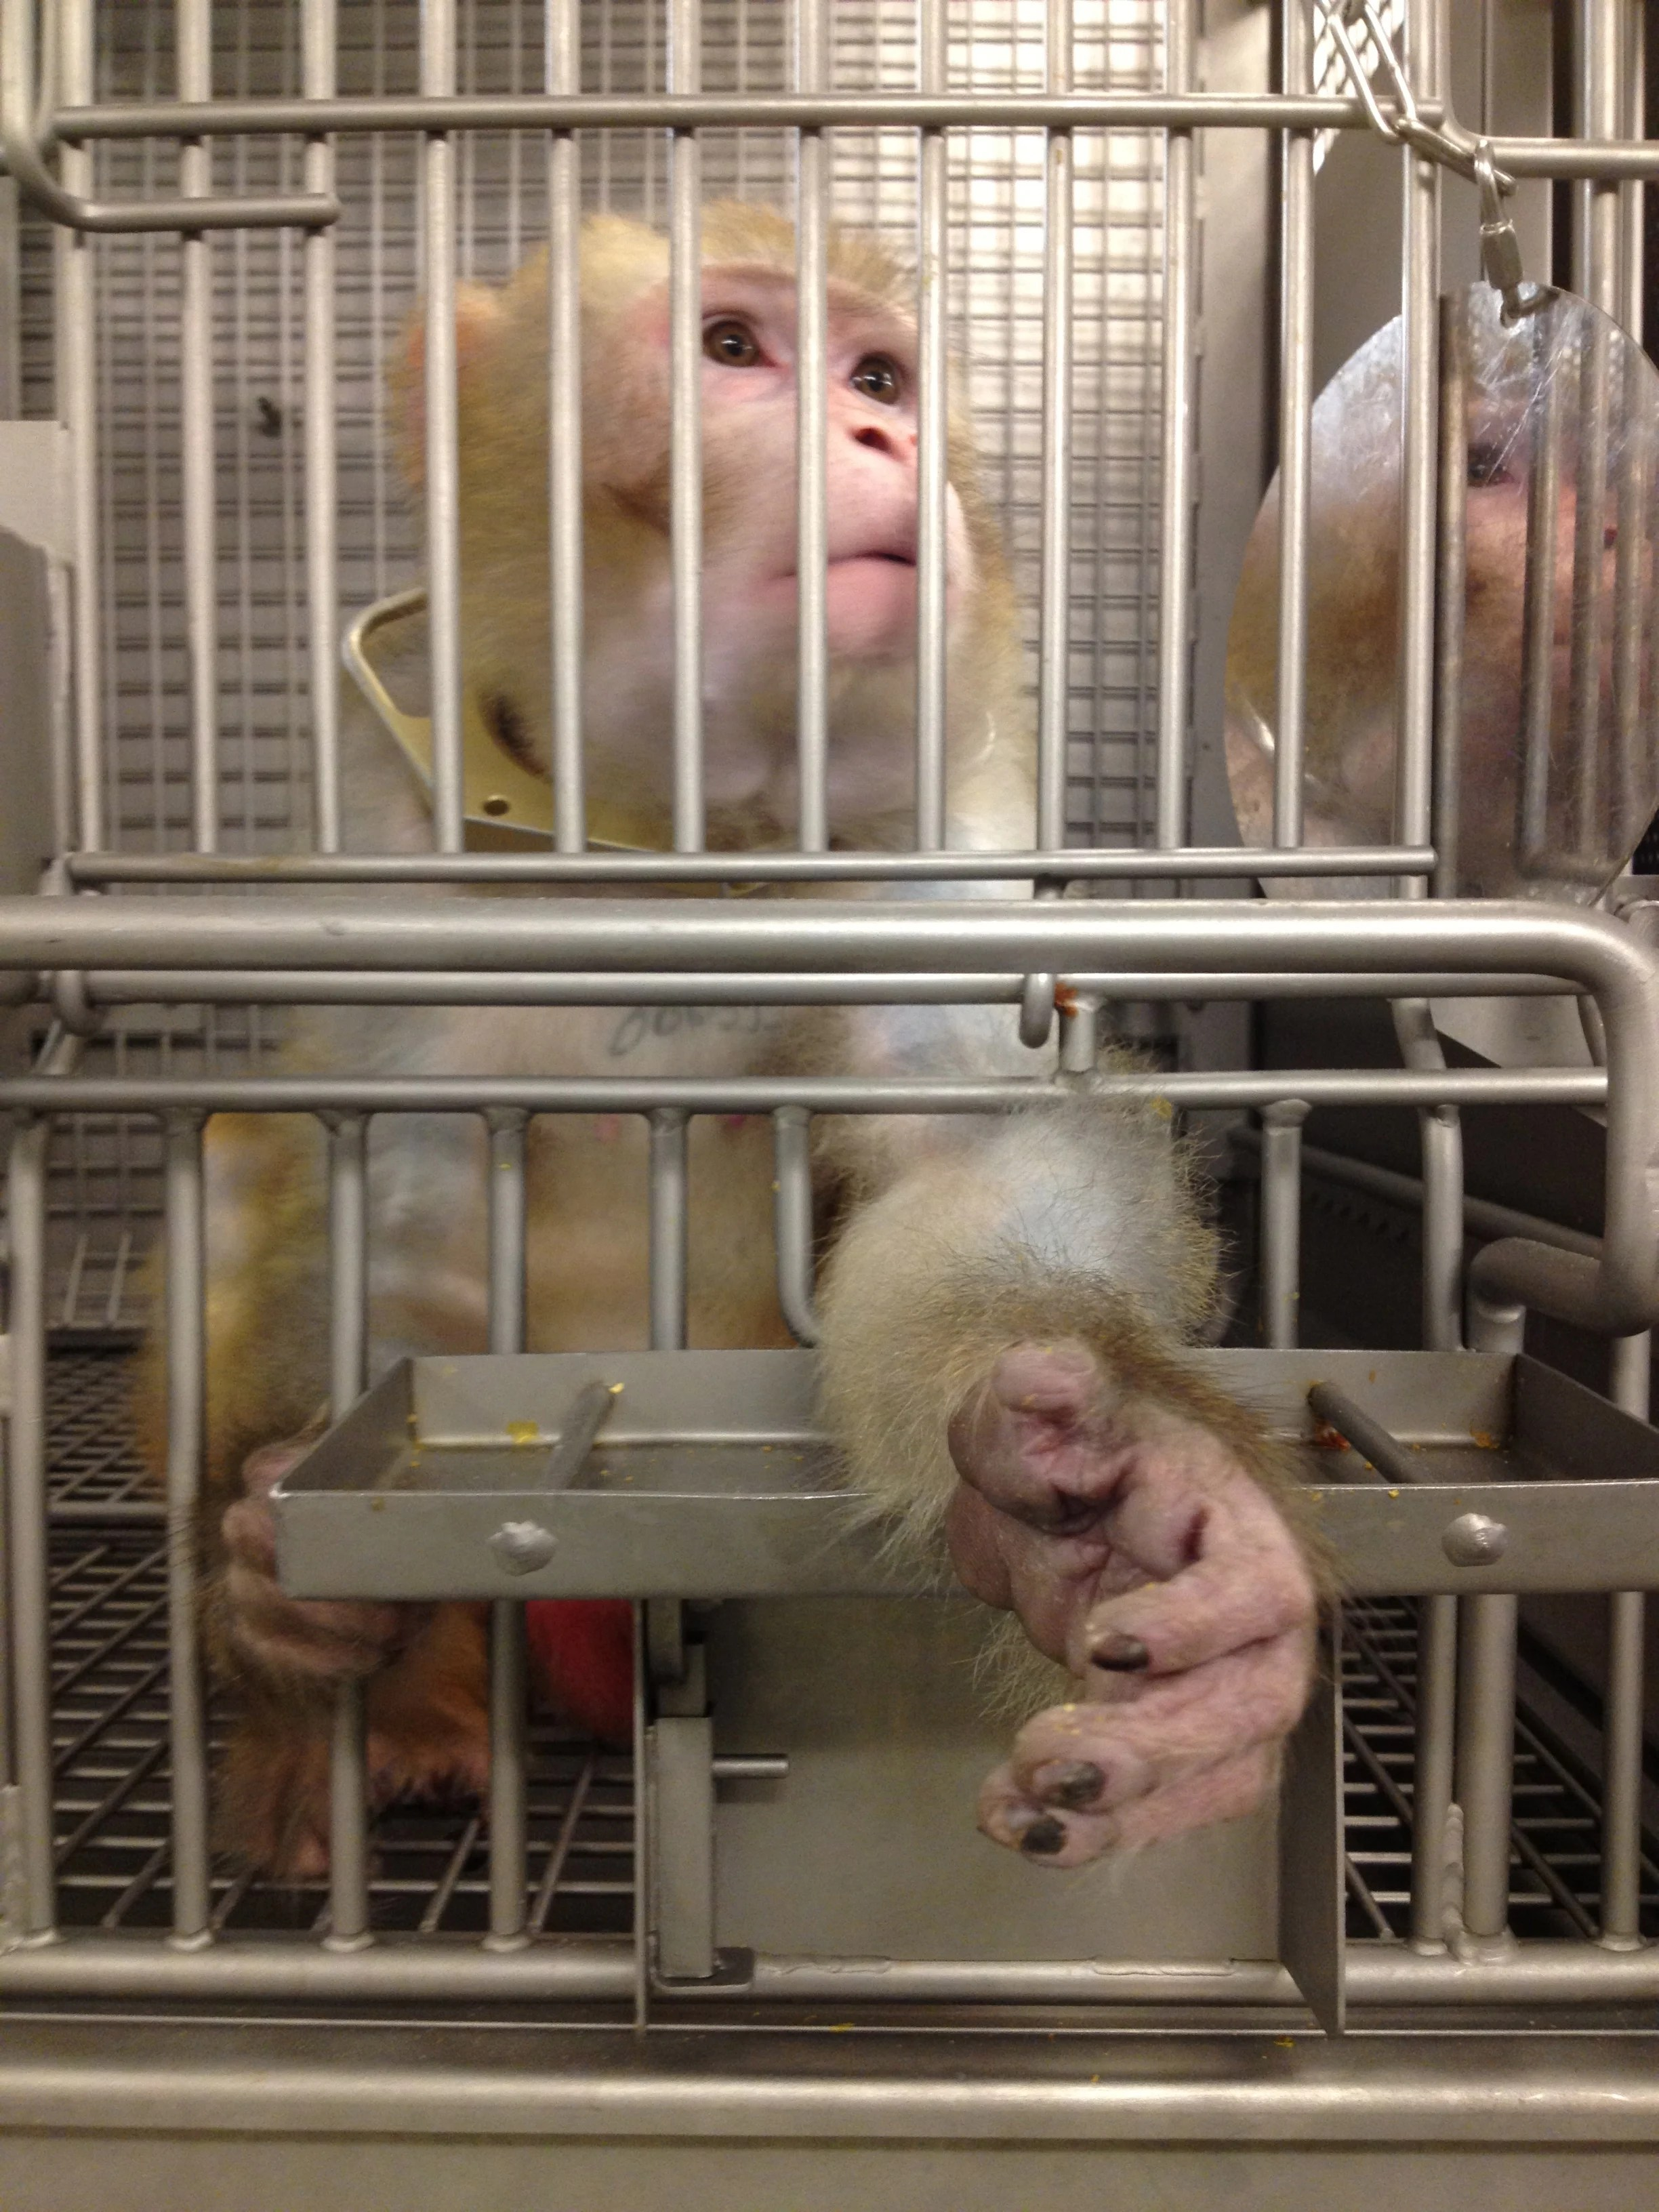 This is a photo of a macaque, imprisoned in a bare cage, and extending her hand out of the bars.